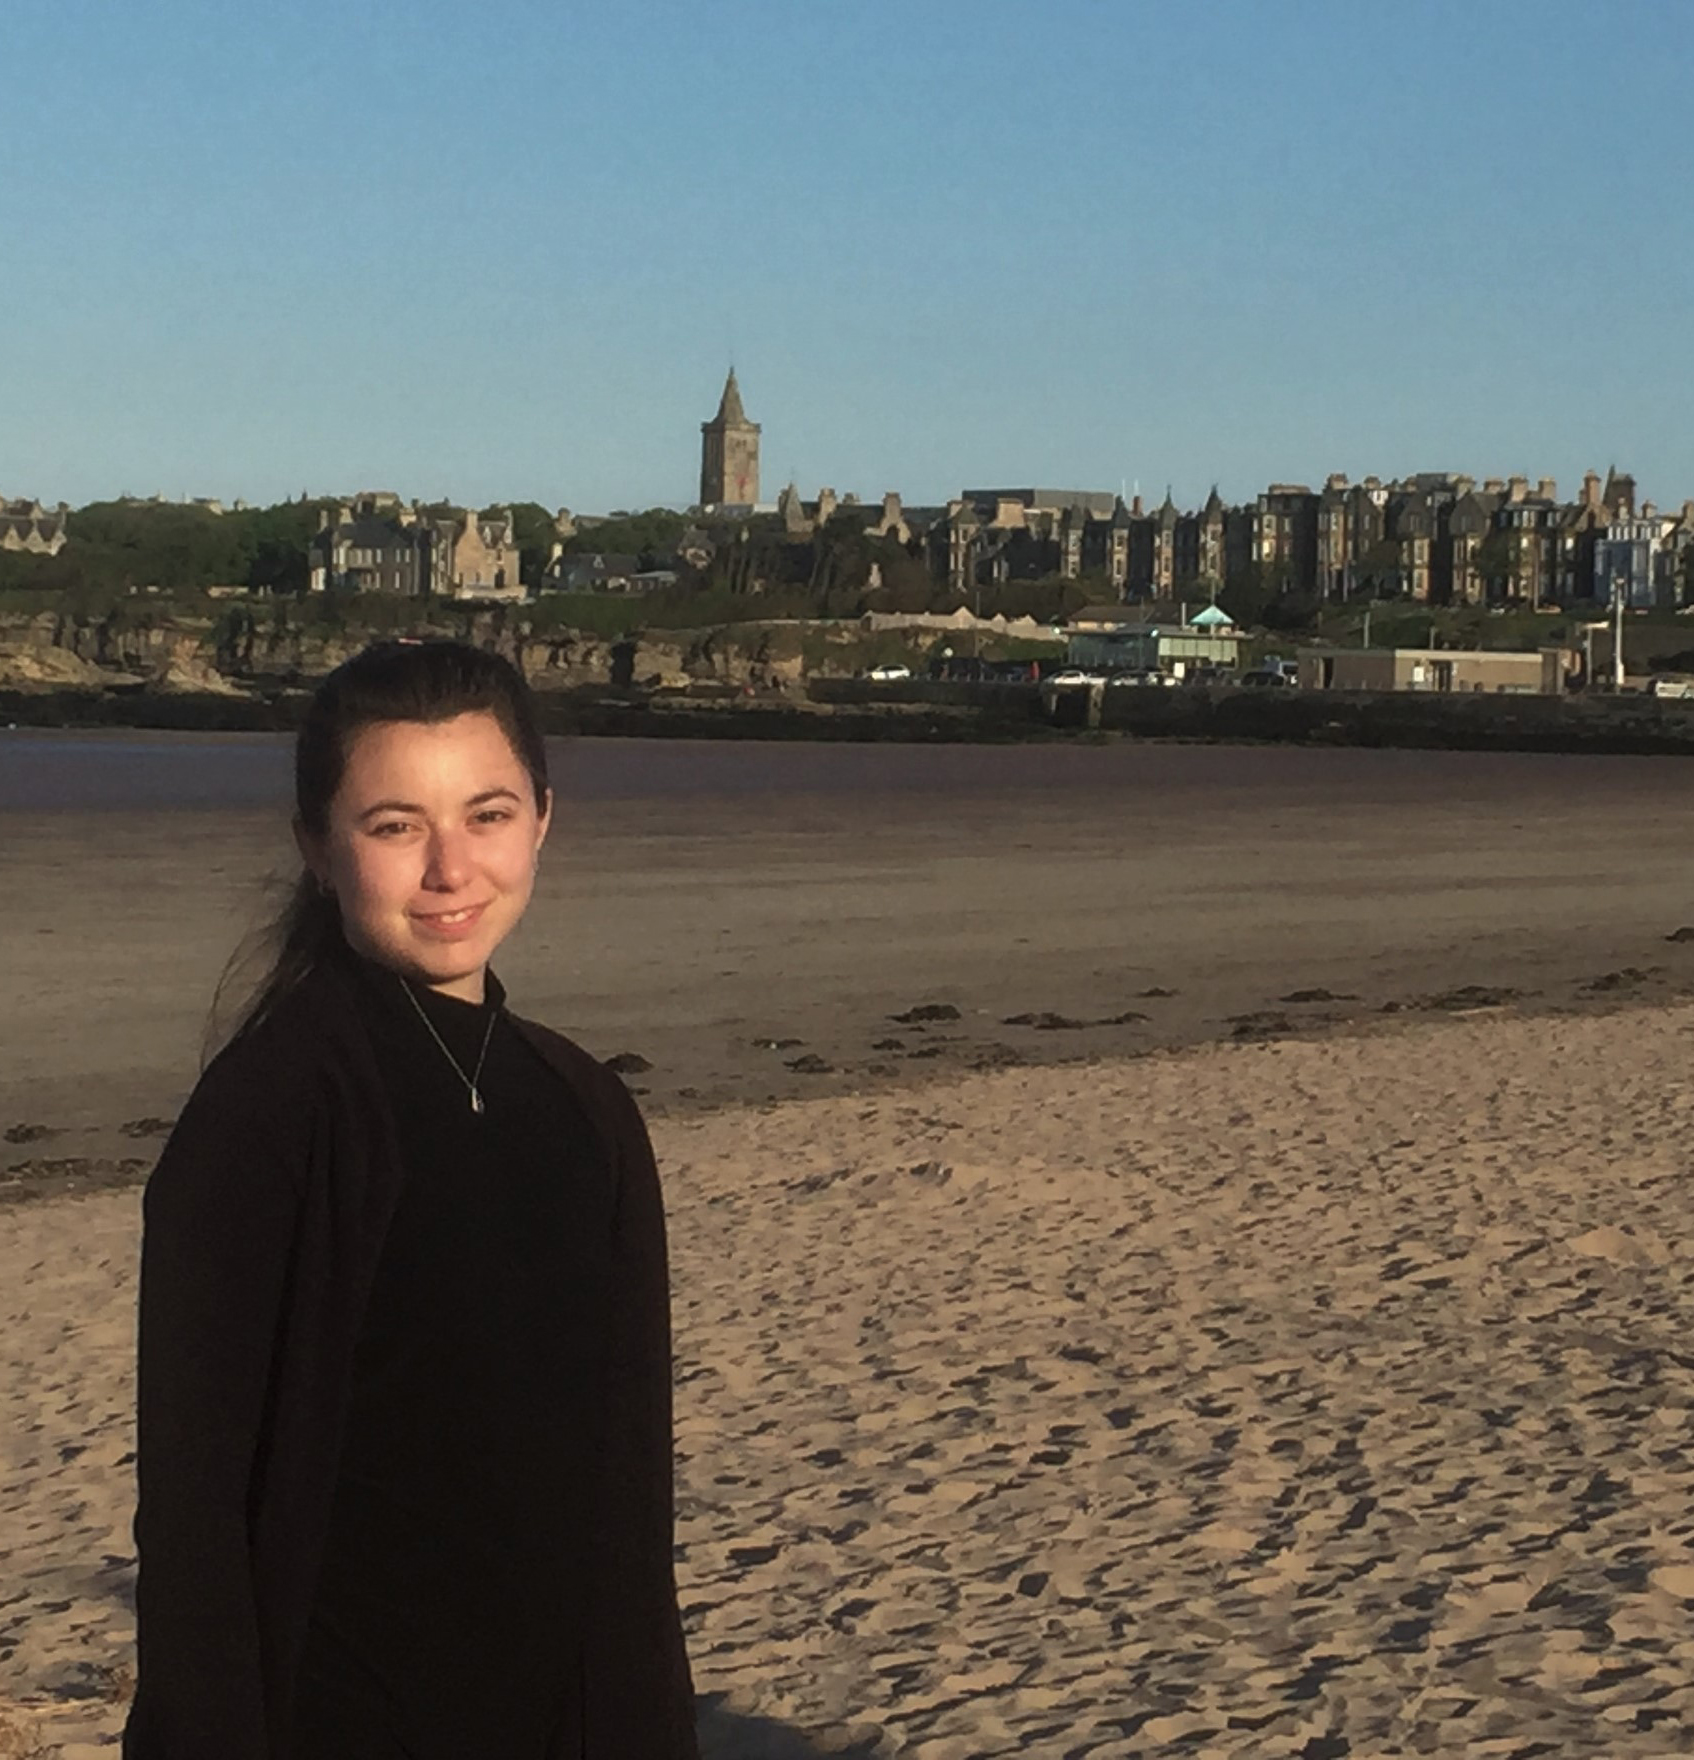 Abigail Hartman '17 in St. Andrews, Scotland